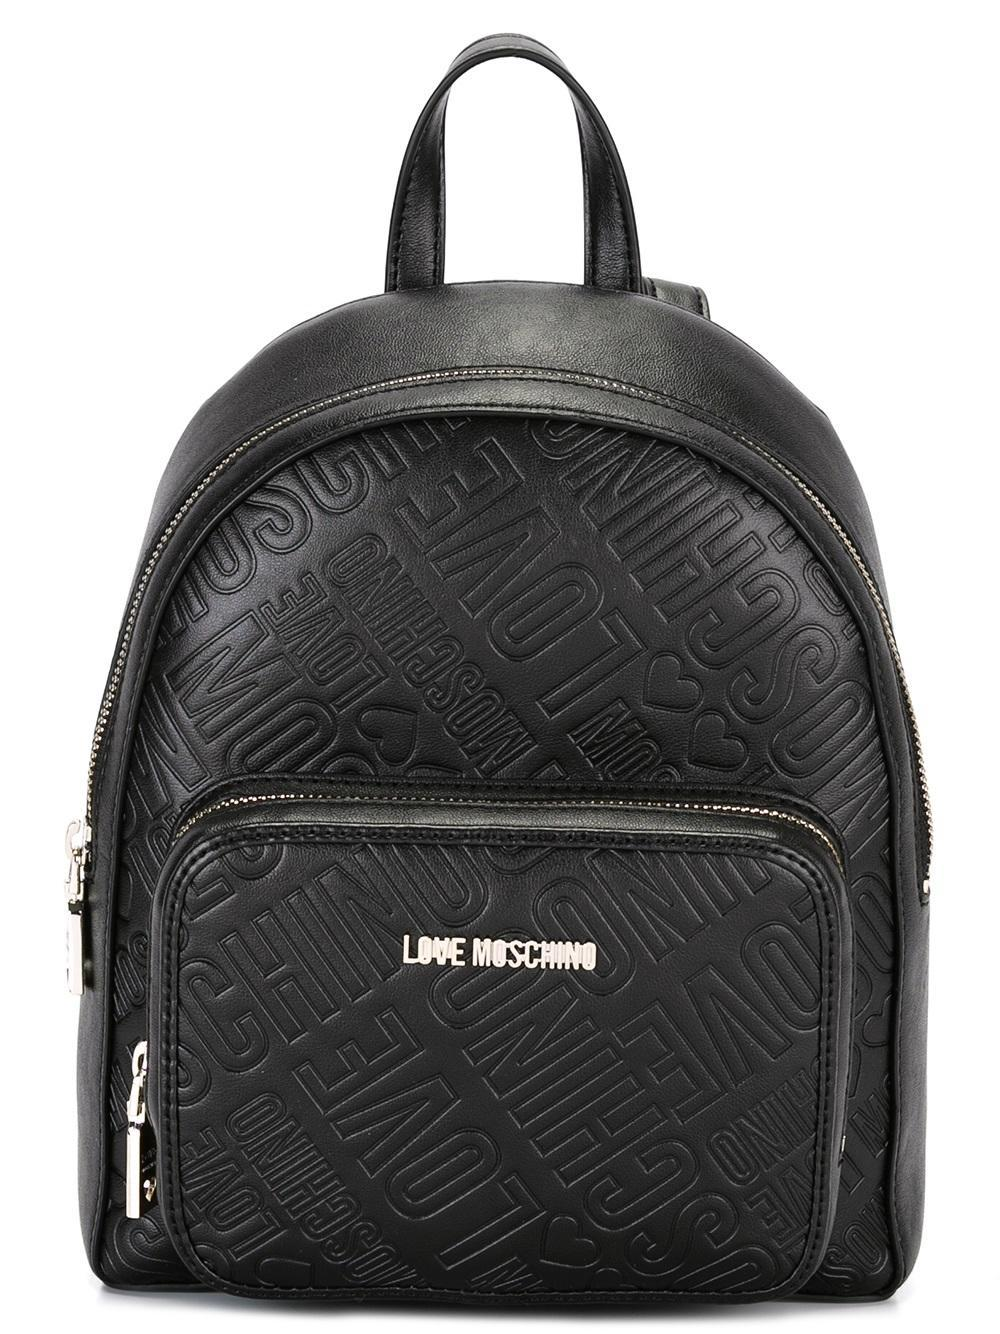 love moschino logo embossed backpack in black lyst. Black Bedroom Furniture Sets. Home Design Ideas